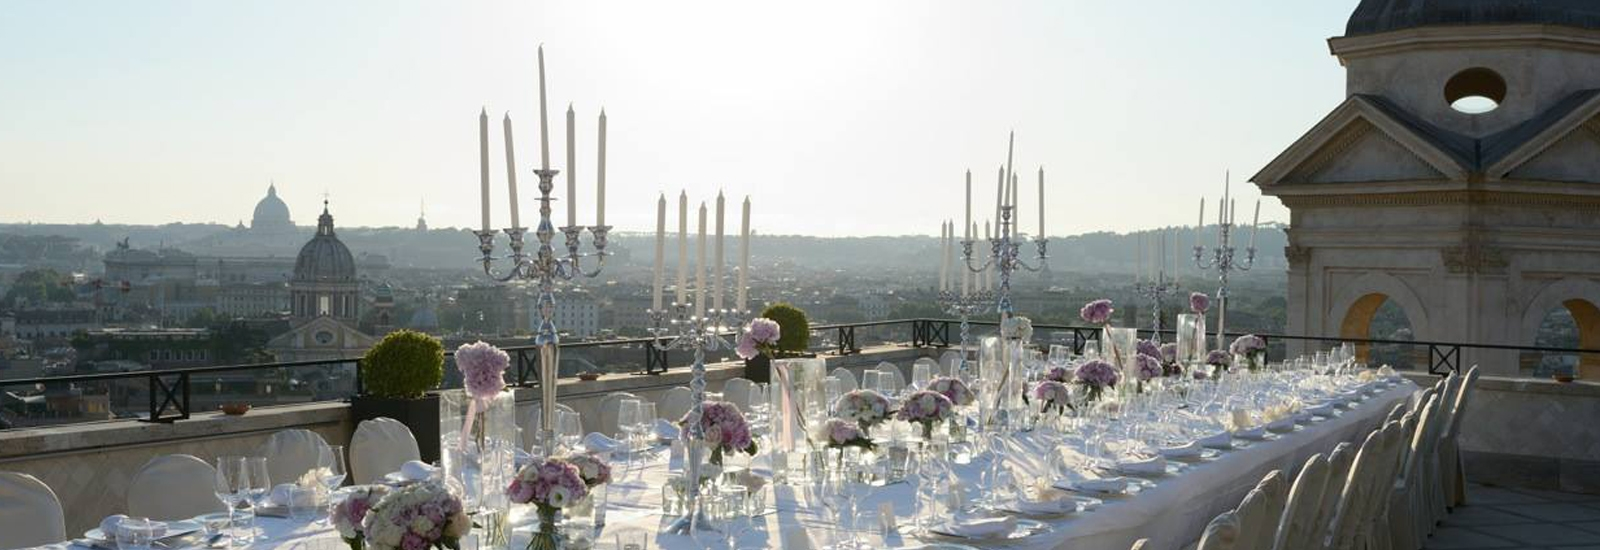 weddings events2